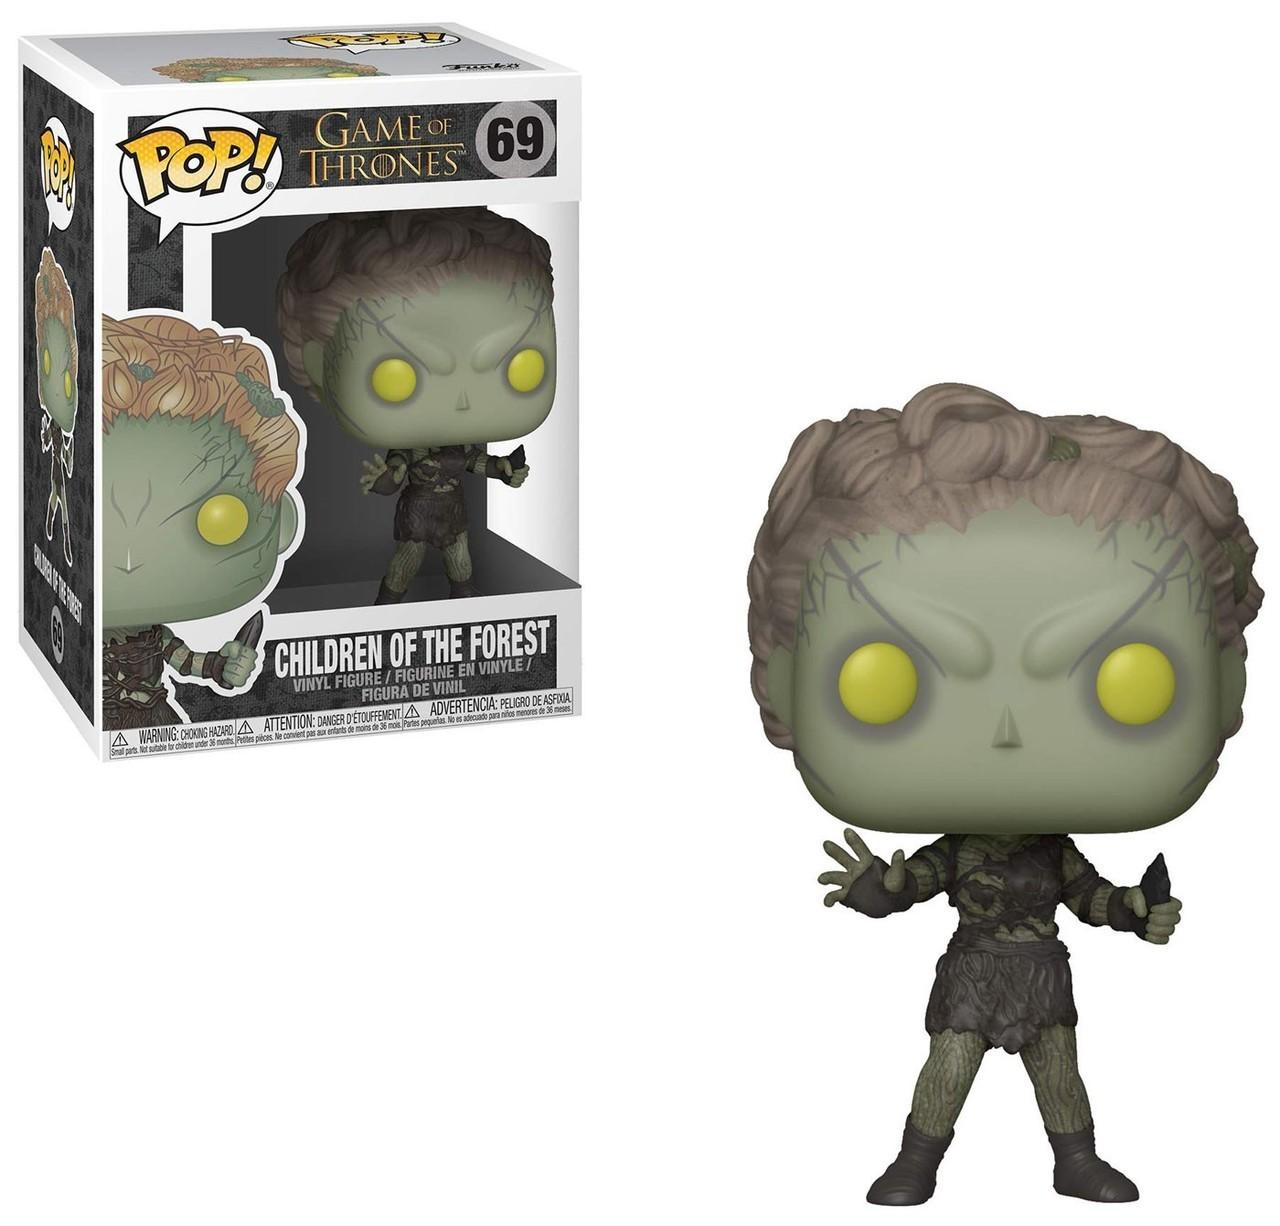 POP! Game of Thrones - Children of the Forest (69) Vinyl Figure